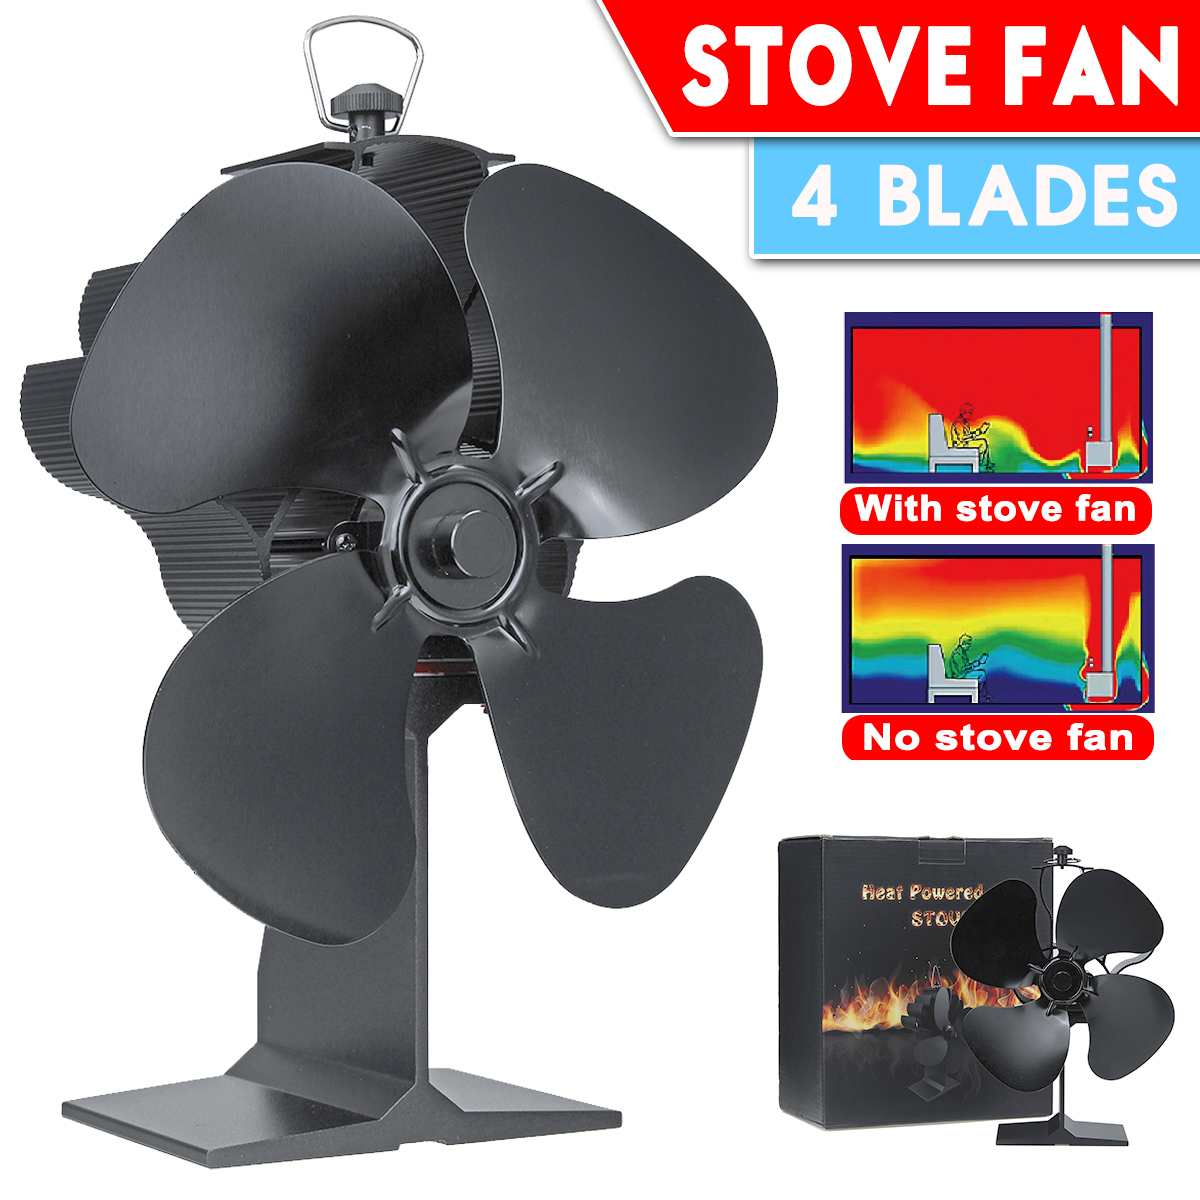 4 Blades Heat Powered Stove Fireplace Fan For Home Wood Burning Fireplace Eco-Friendly Circulate Warm Air Save Fuel Efficiently